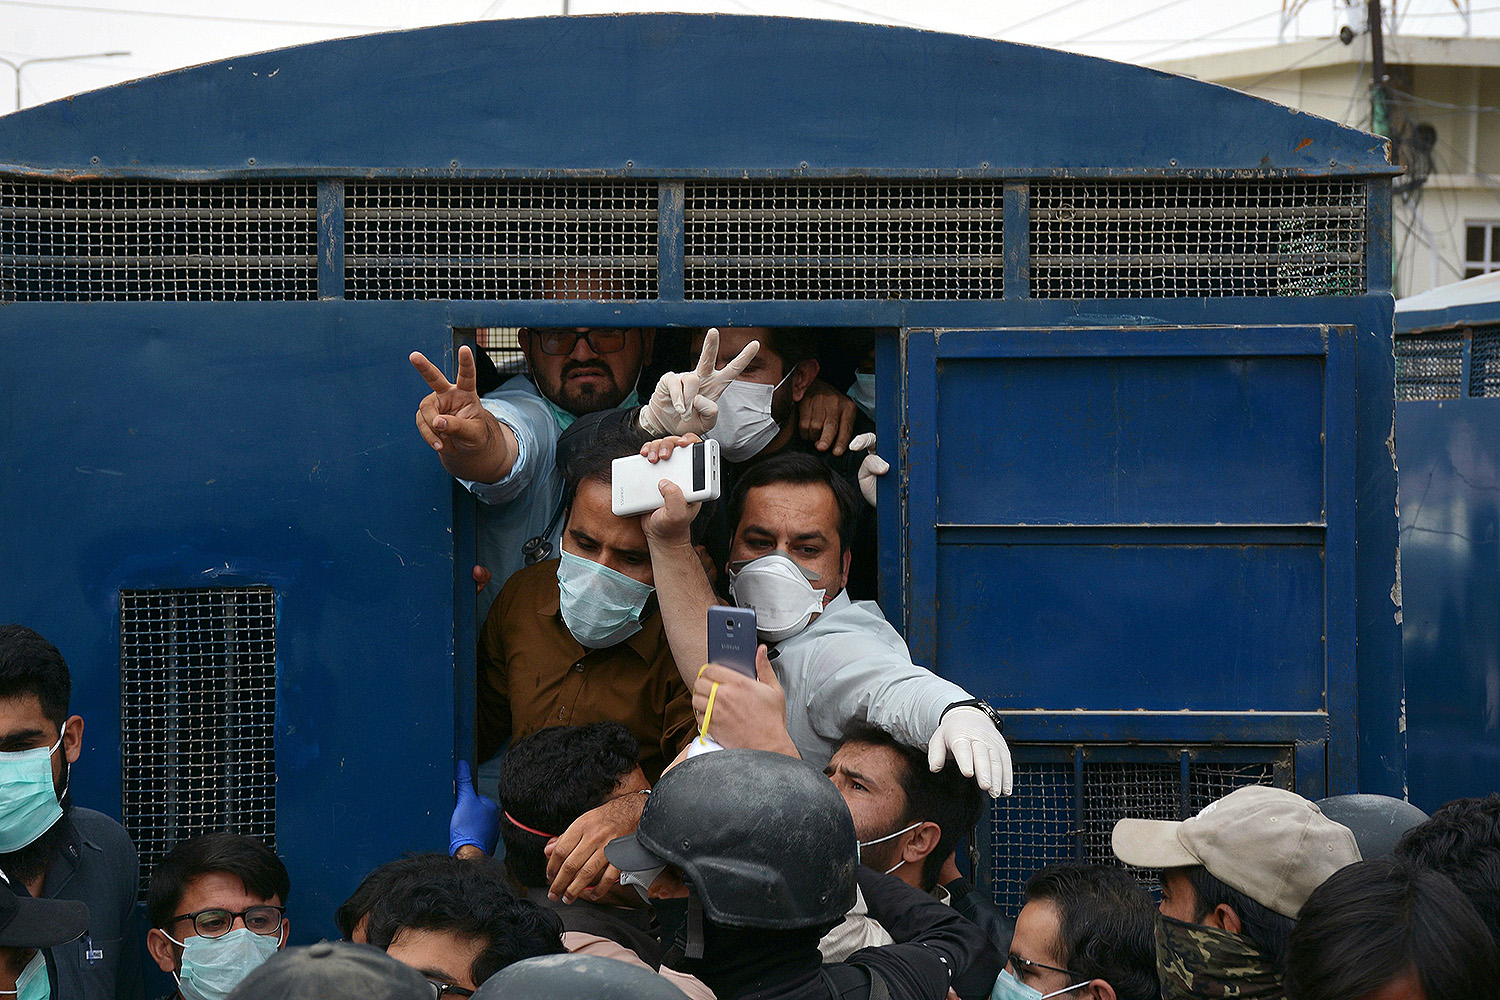 Authorities in Pakistan's southwestern city of Quetta arrest dozens of doctors and paramedics who were protesting against the lack of safety equipment April 6. BANARAS KHAN/AFP via Getty Images